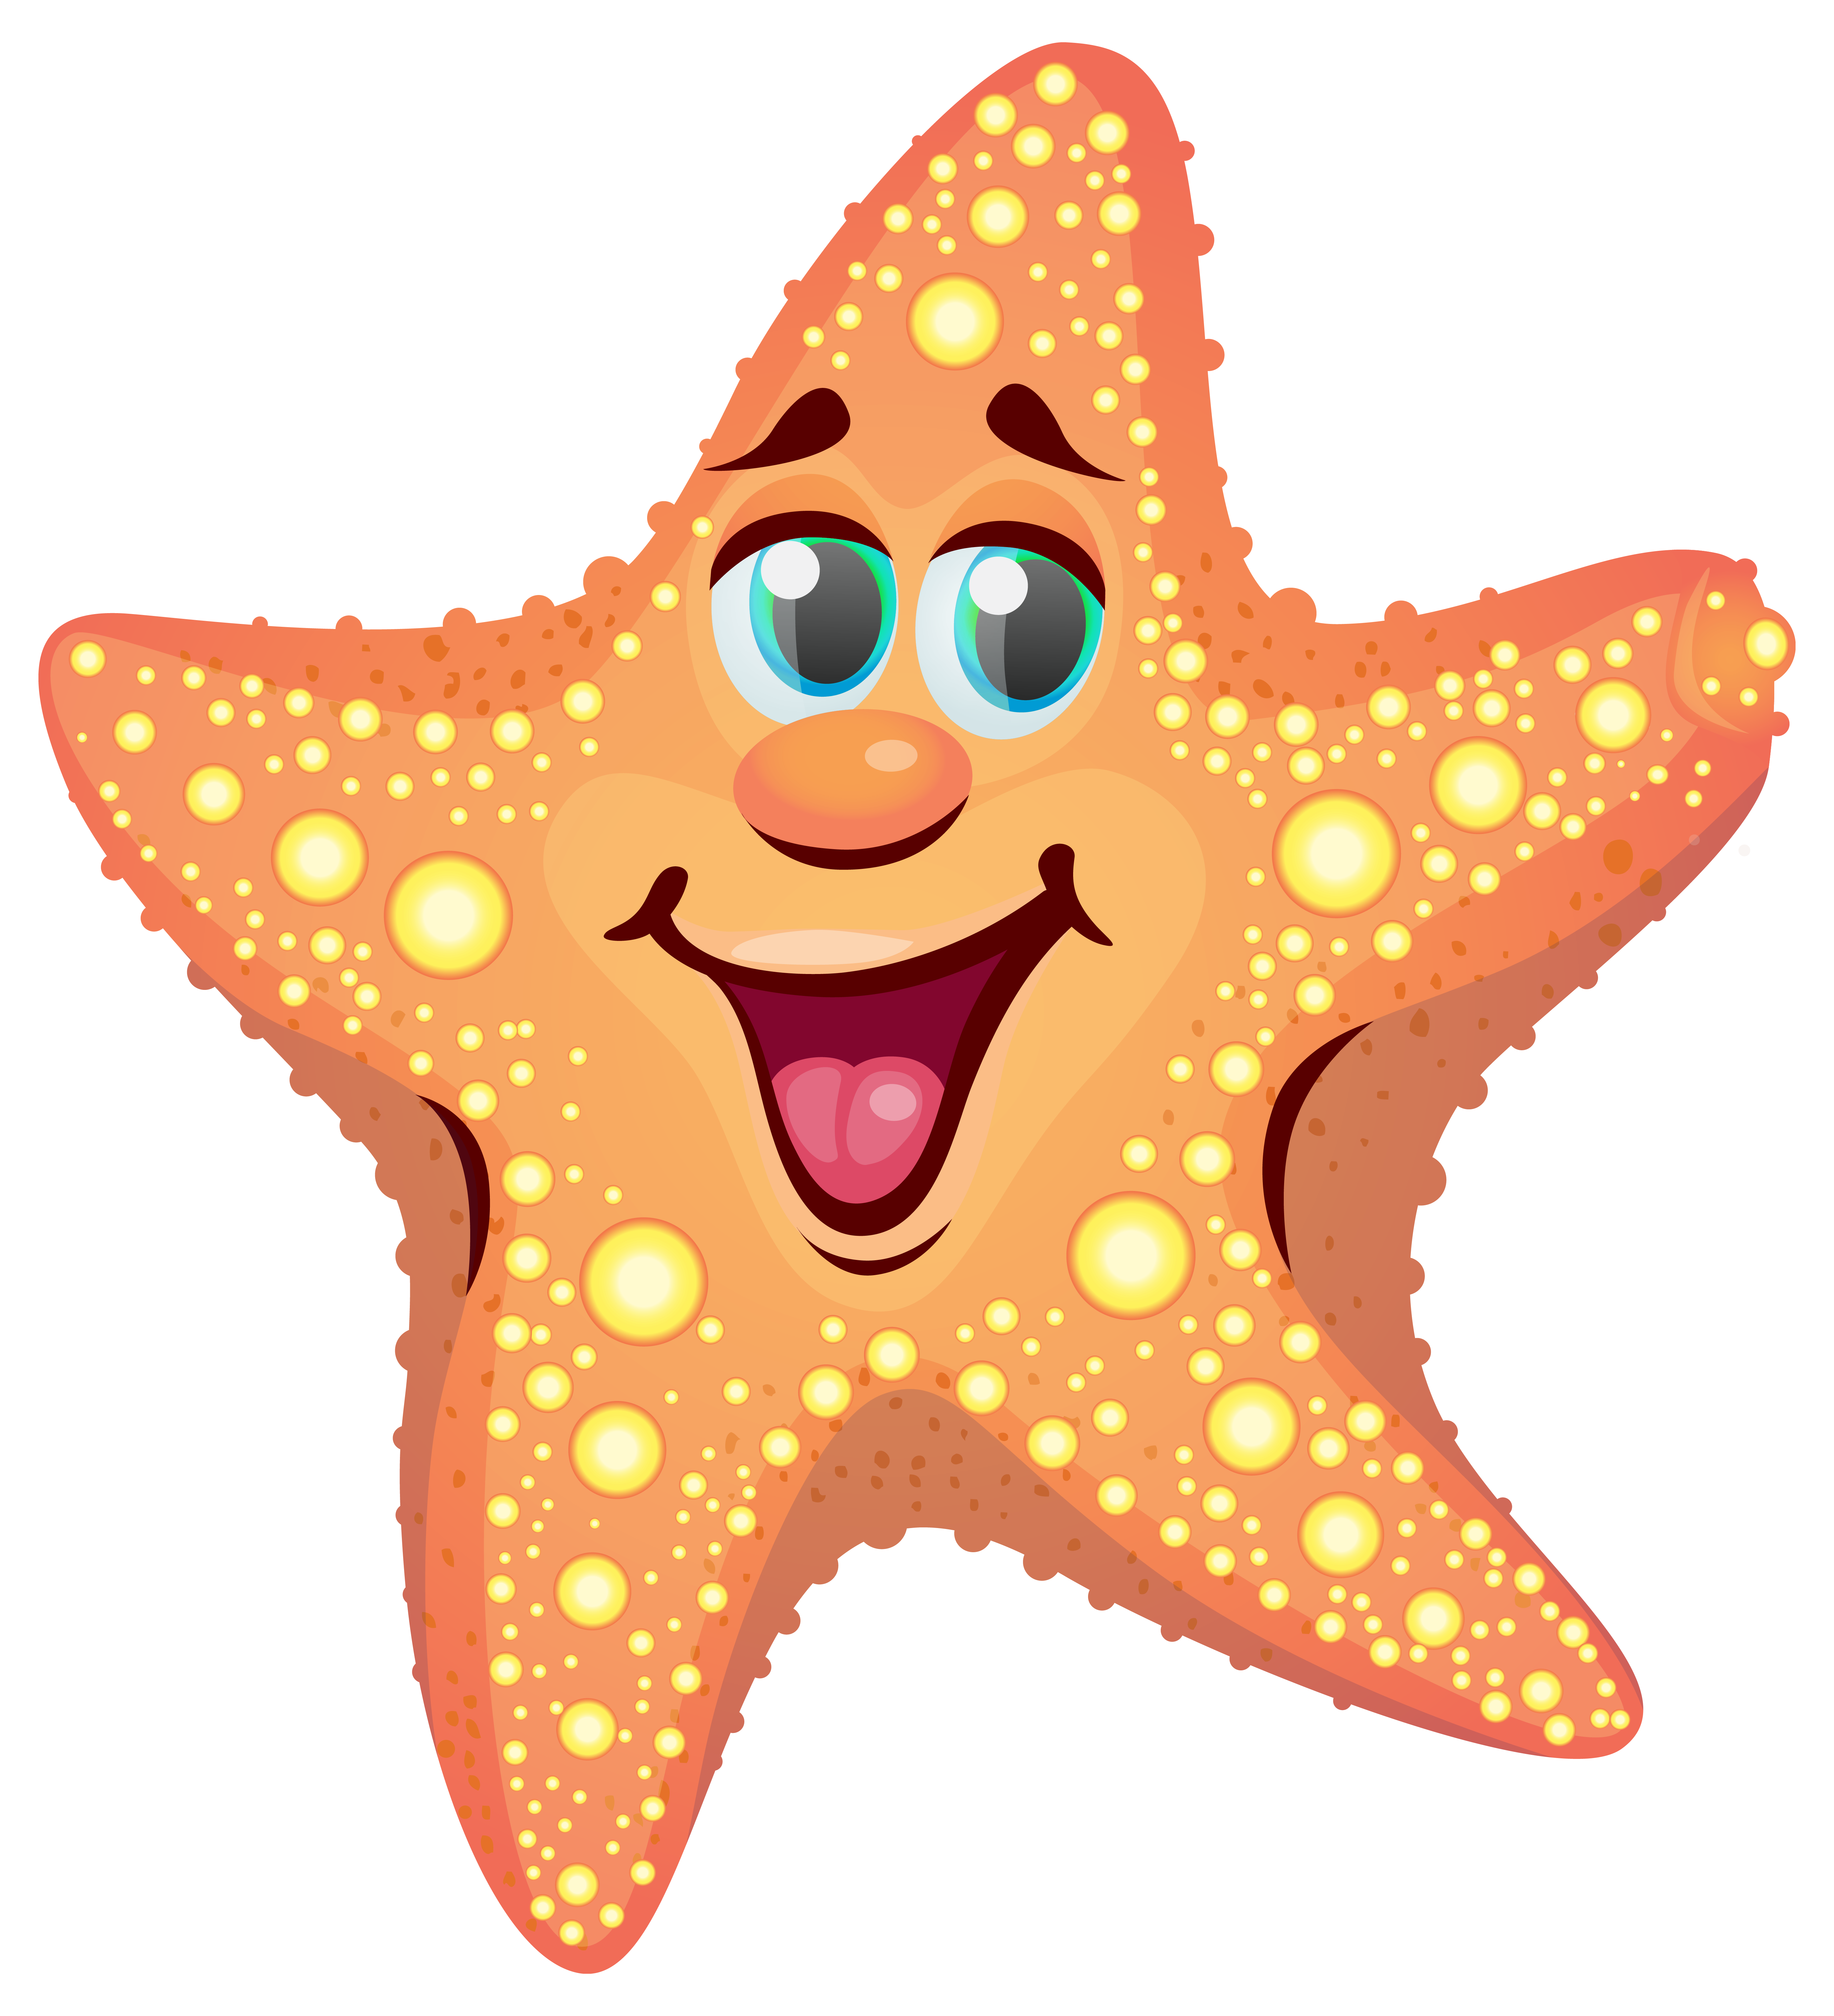 Starfish clipart. Cartoon png image gallery